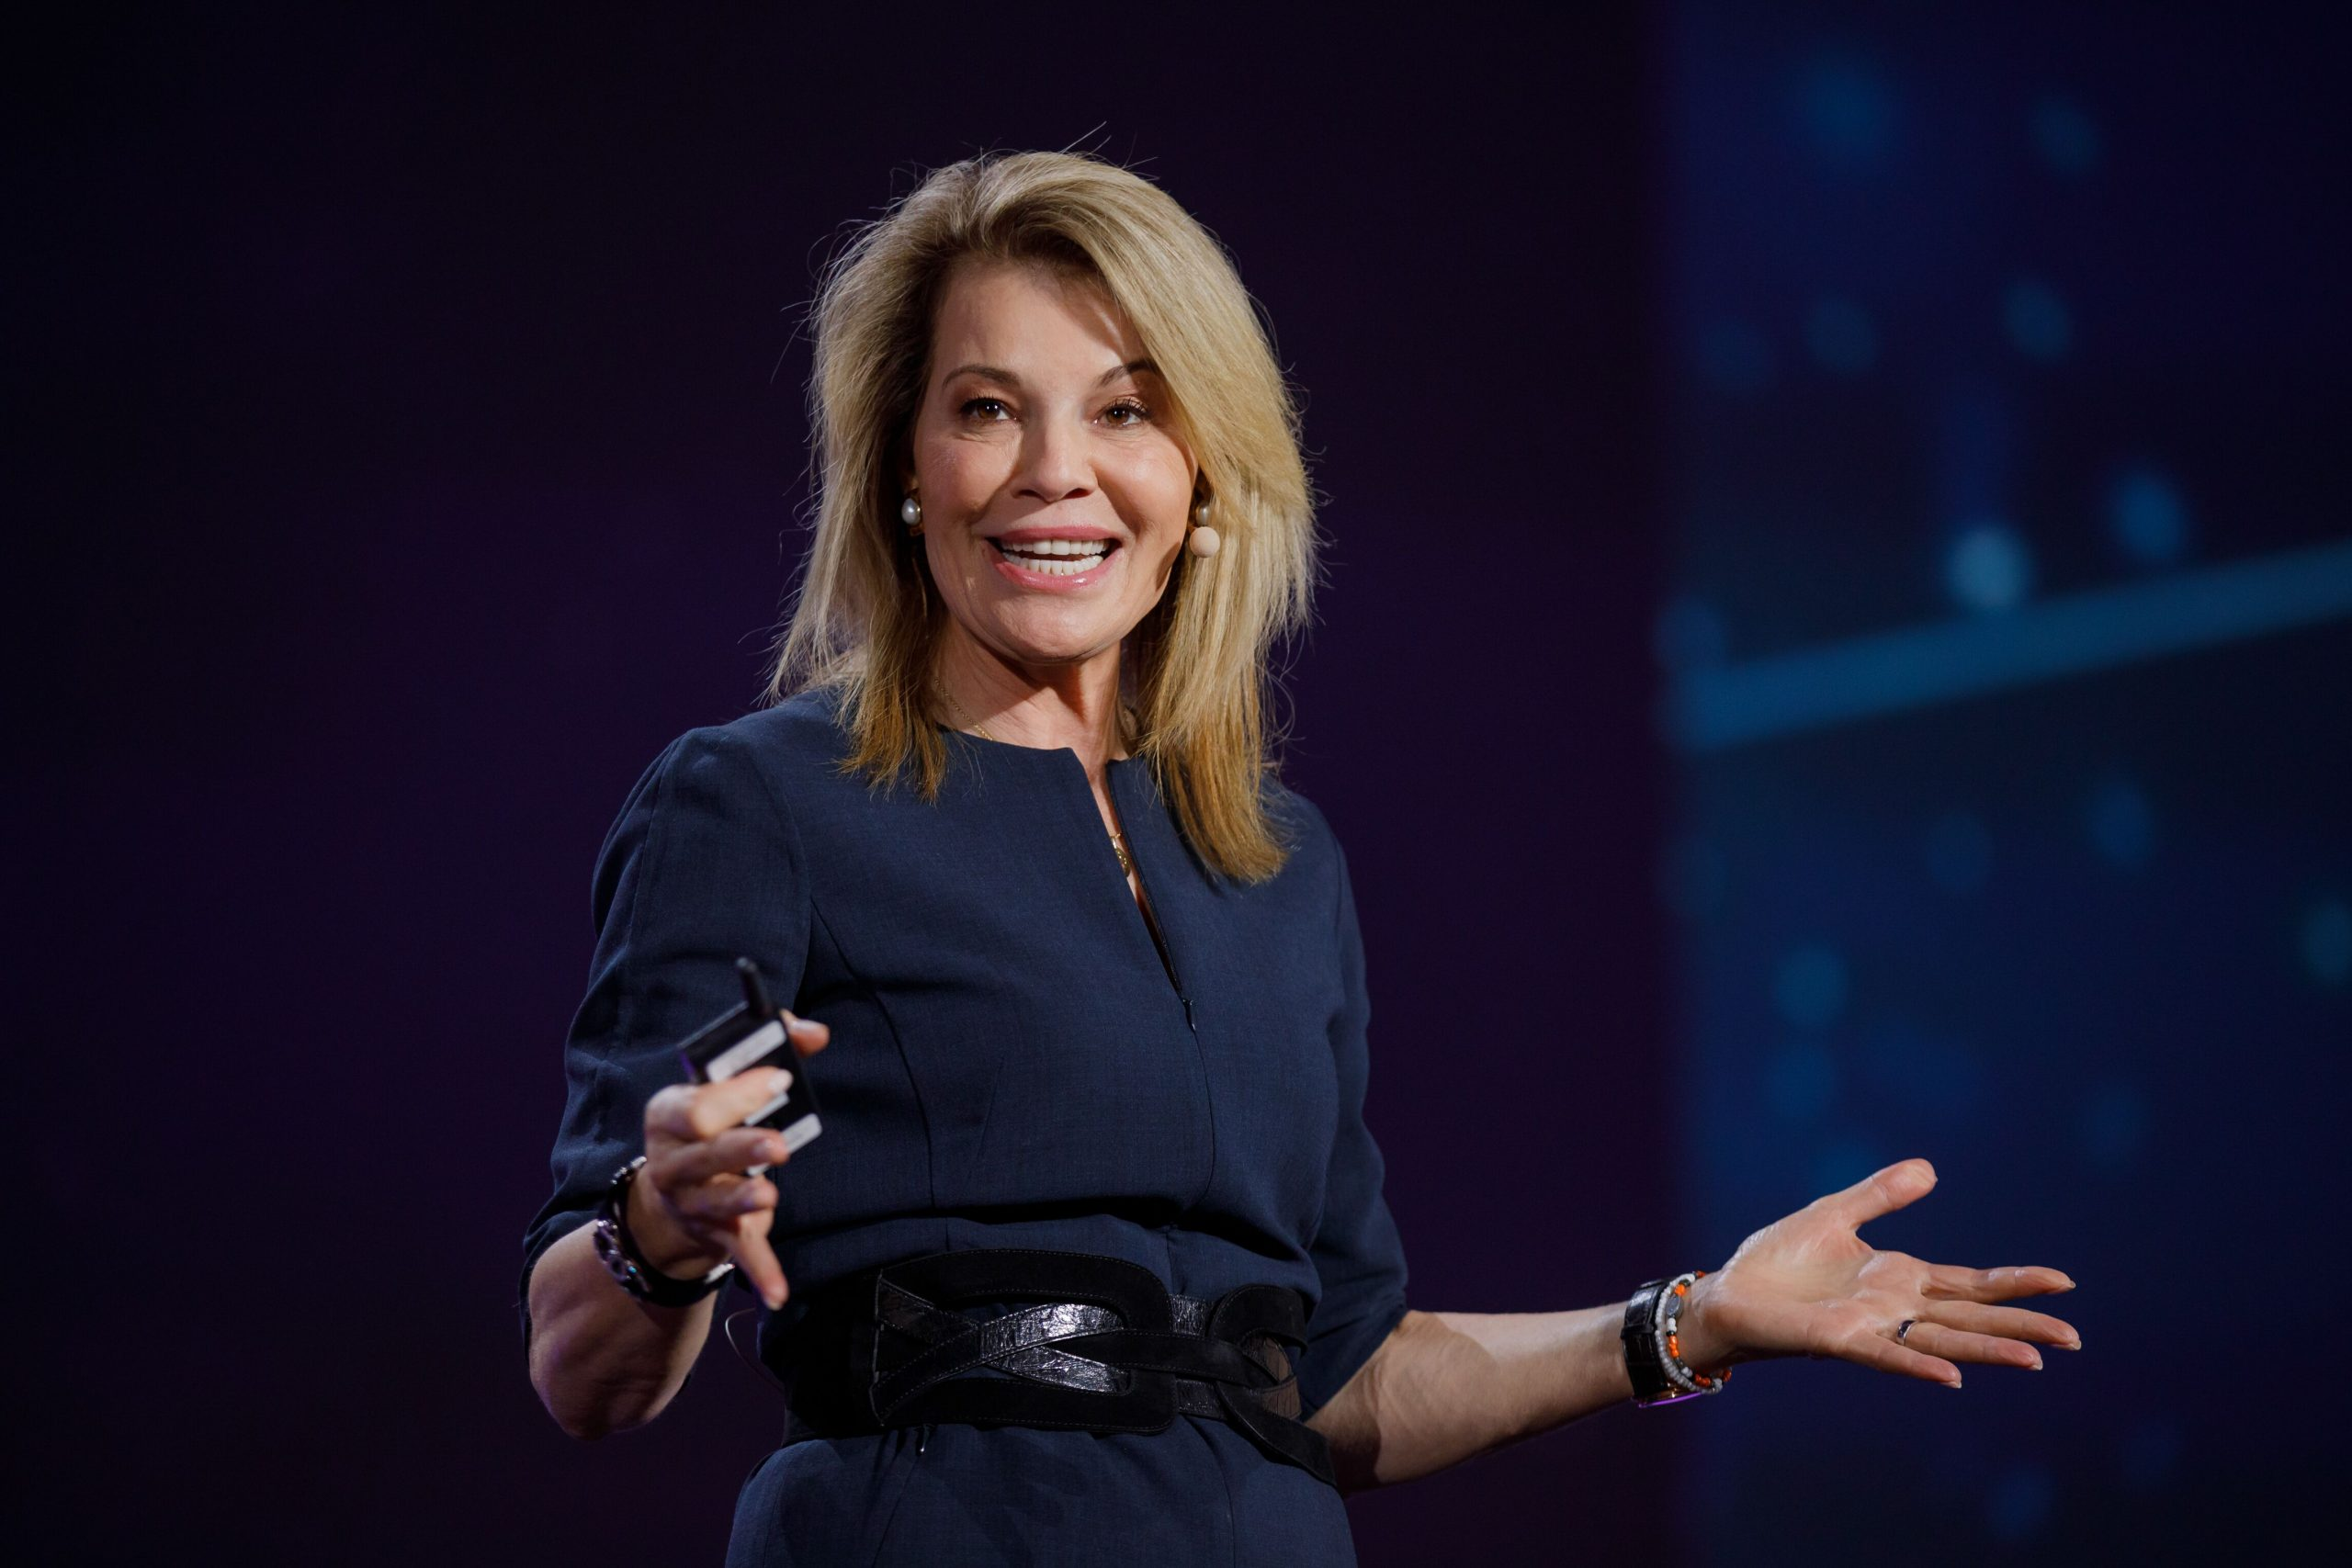 Teresa-Carlson-Vice-President-AWS-Worldwide-Public-Sector-Keynote-Photo-2-scaled.jpg